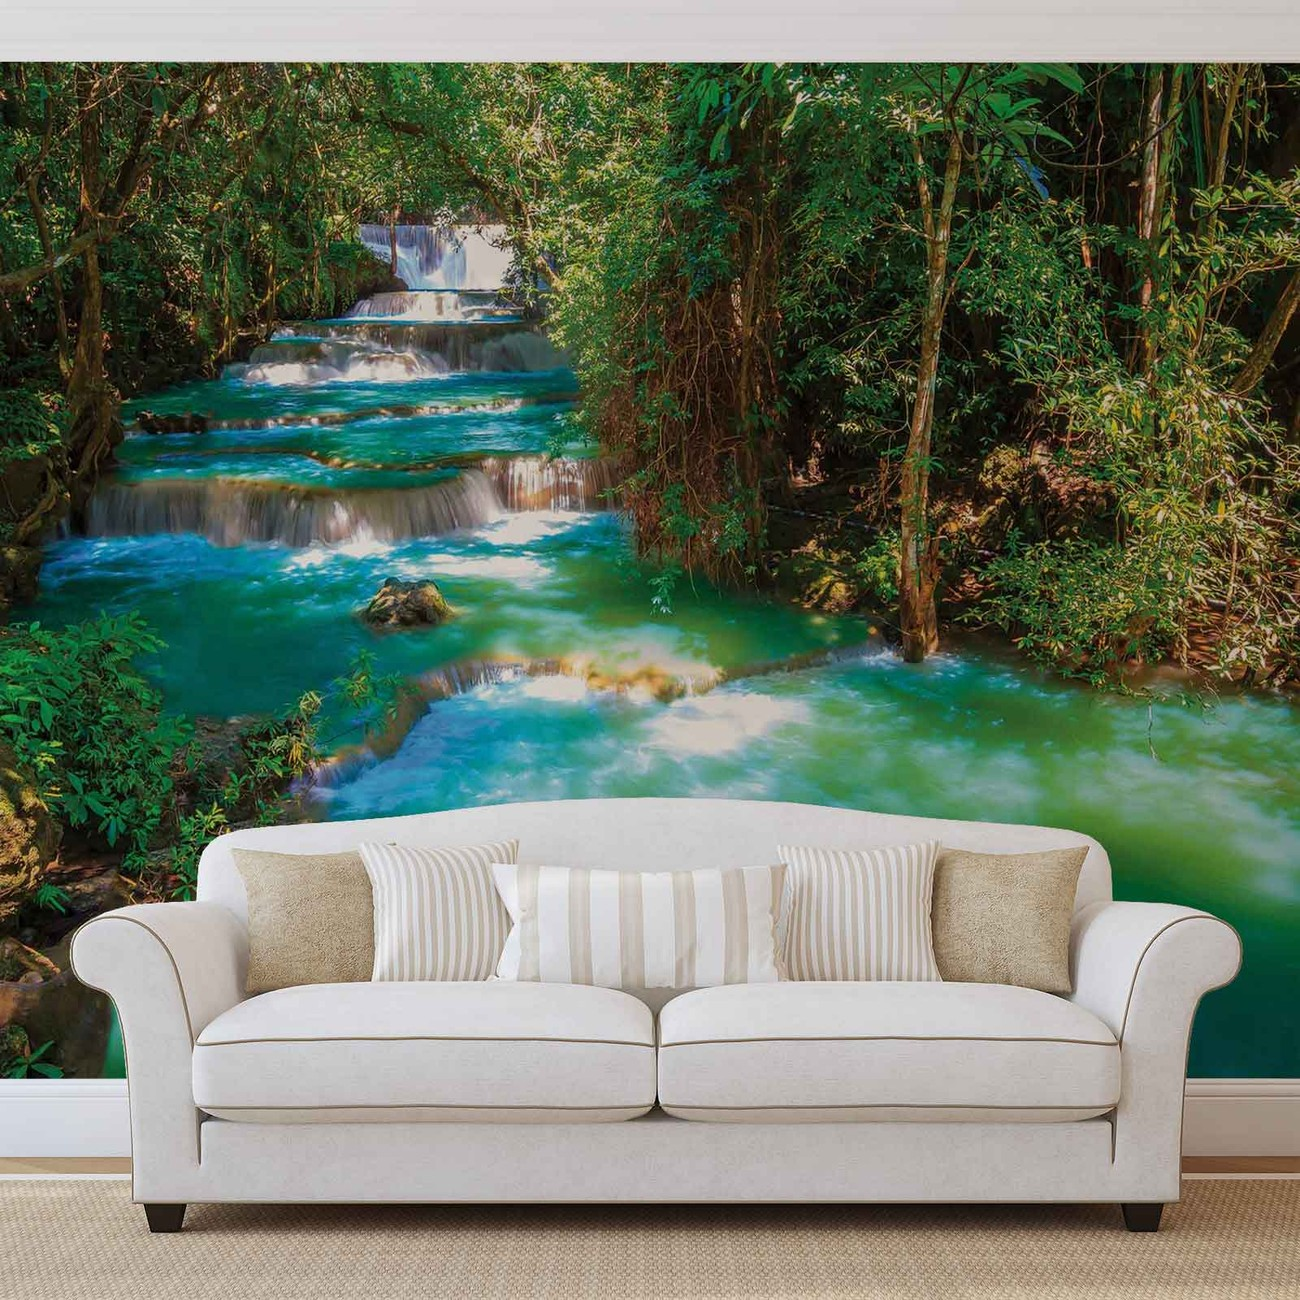 Waterfalls Trees Forest Nature Wall Paper Mural